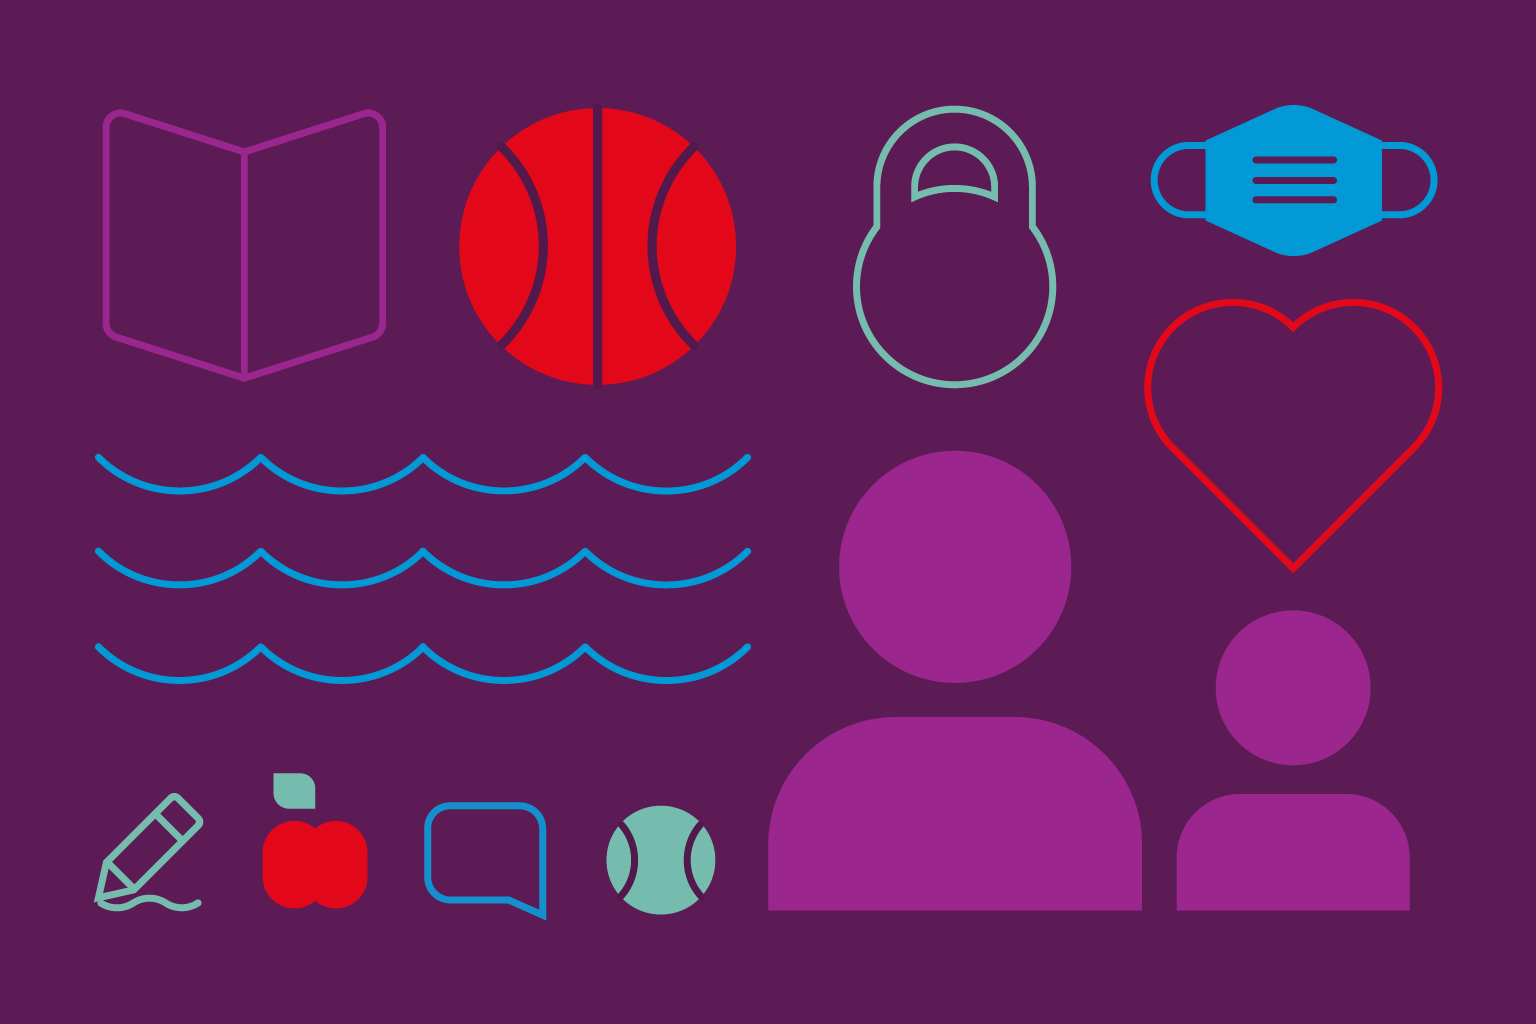 Colorful graphic images in the shape of a basketball, mask, water waves, a book, baseball, kettlebell, apple and people.